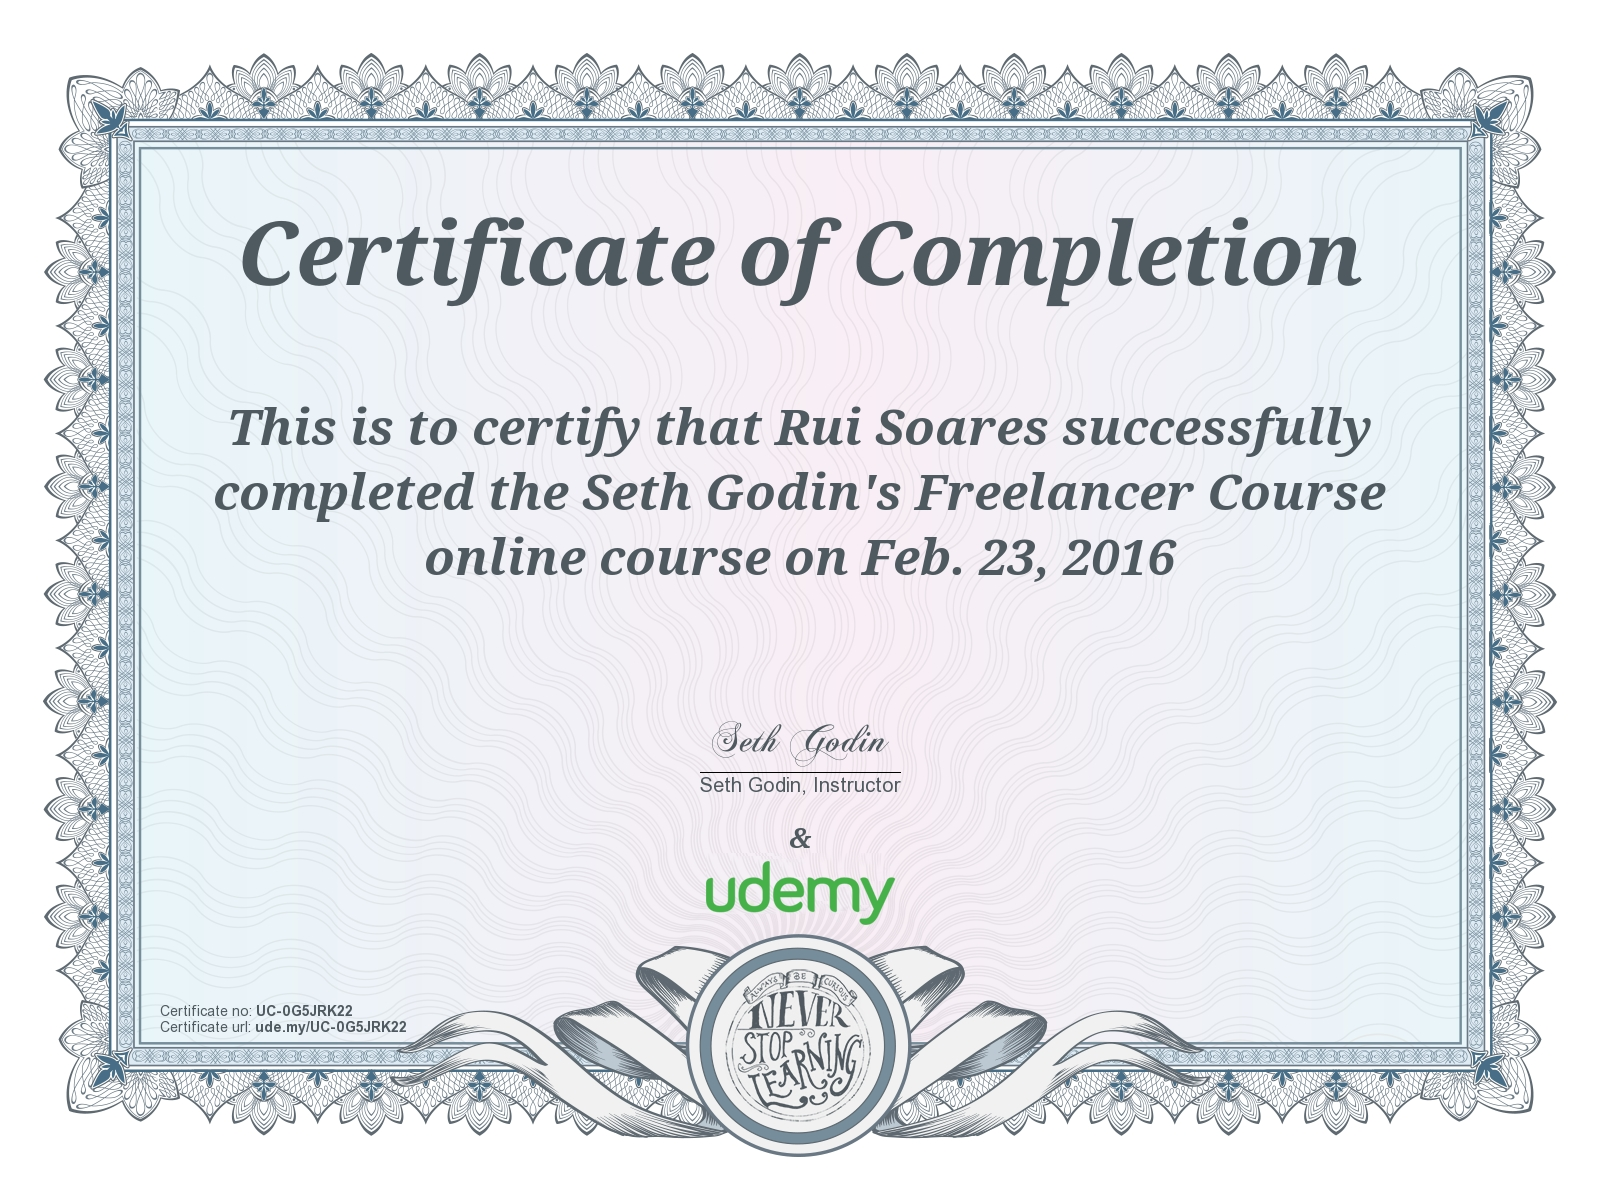 Itil blues itil rants and raves certificate for seth godins freelancer course at udemy xflitez Images